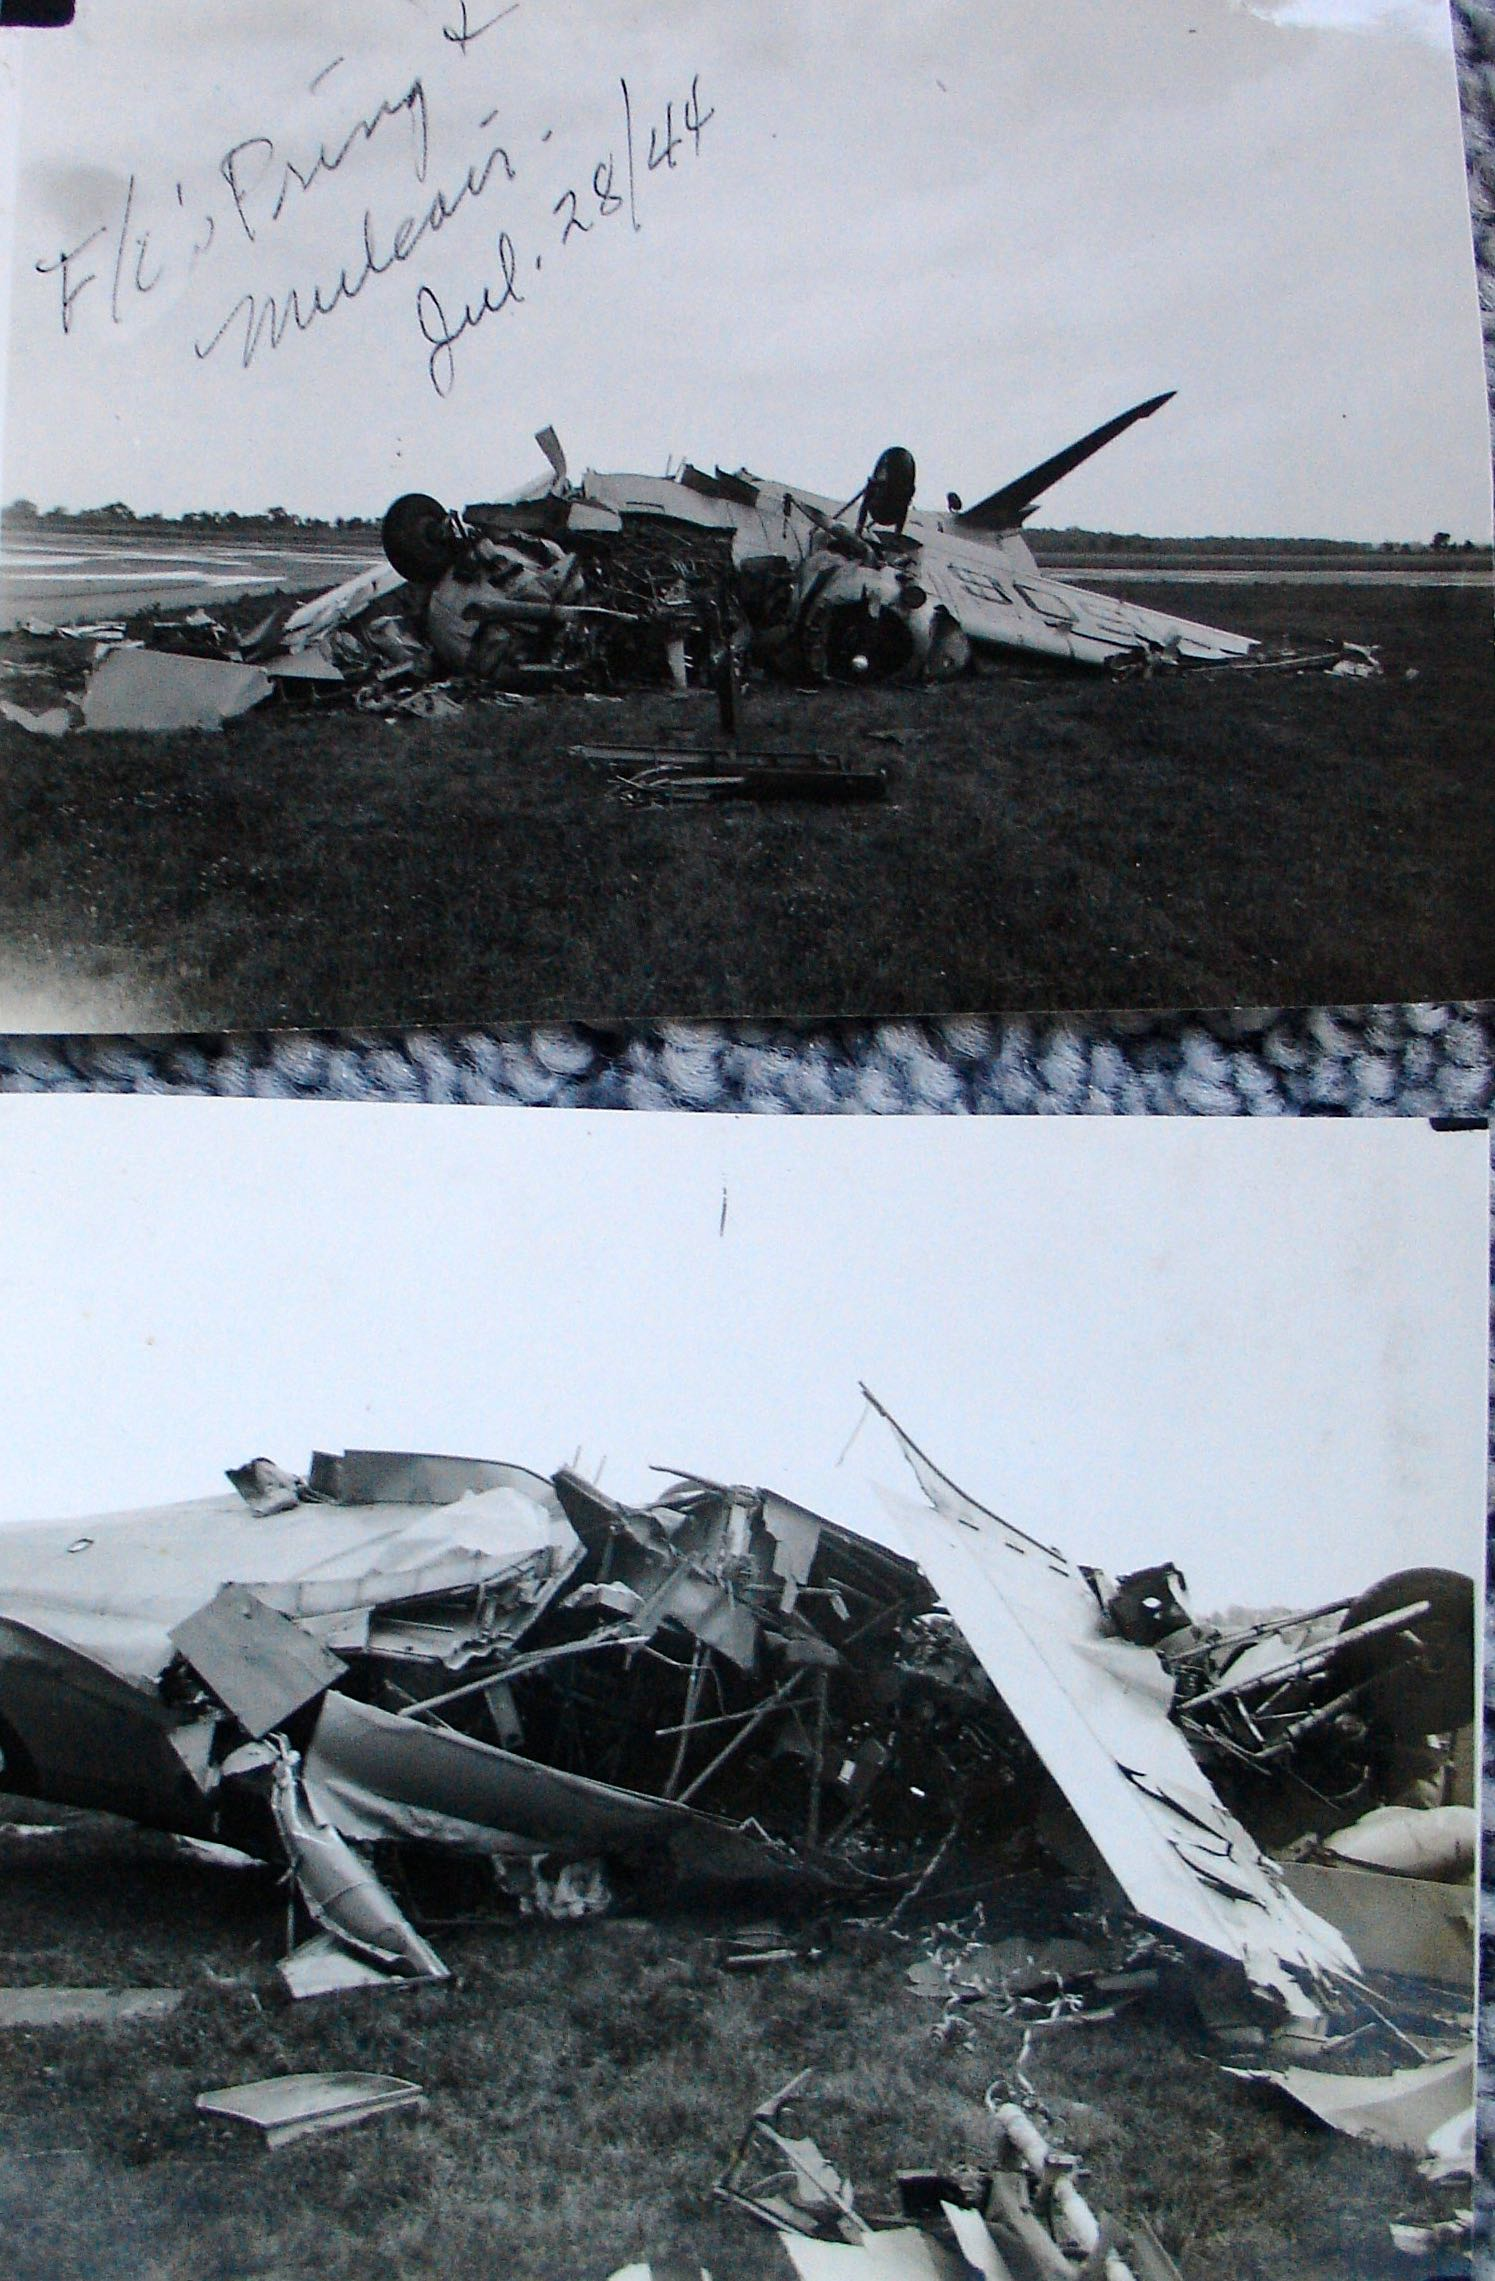 Crash– Photo of Anson plane crash on July 28, 1944.  Photos from the collection of Ruth E. (Owen) Whitelegg, former Leading Aircraftwoman, photographer at #9 SFTS Centralia.